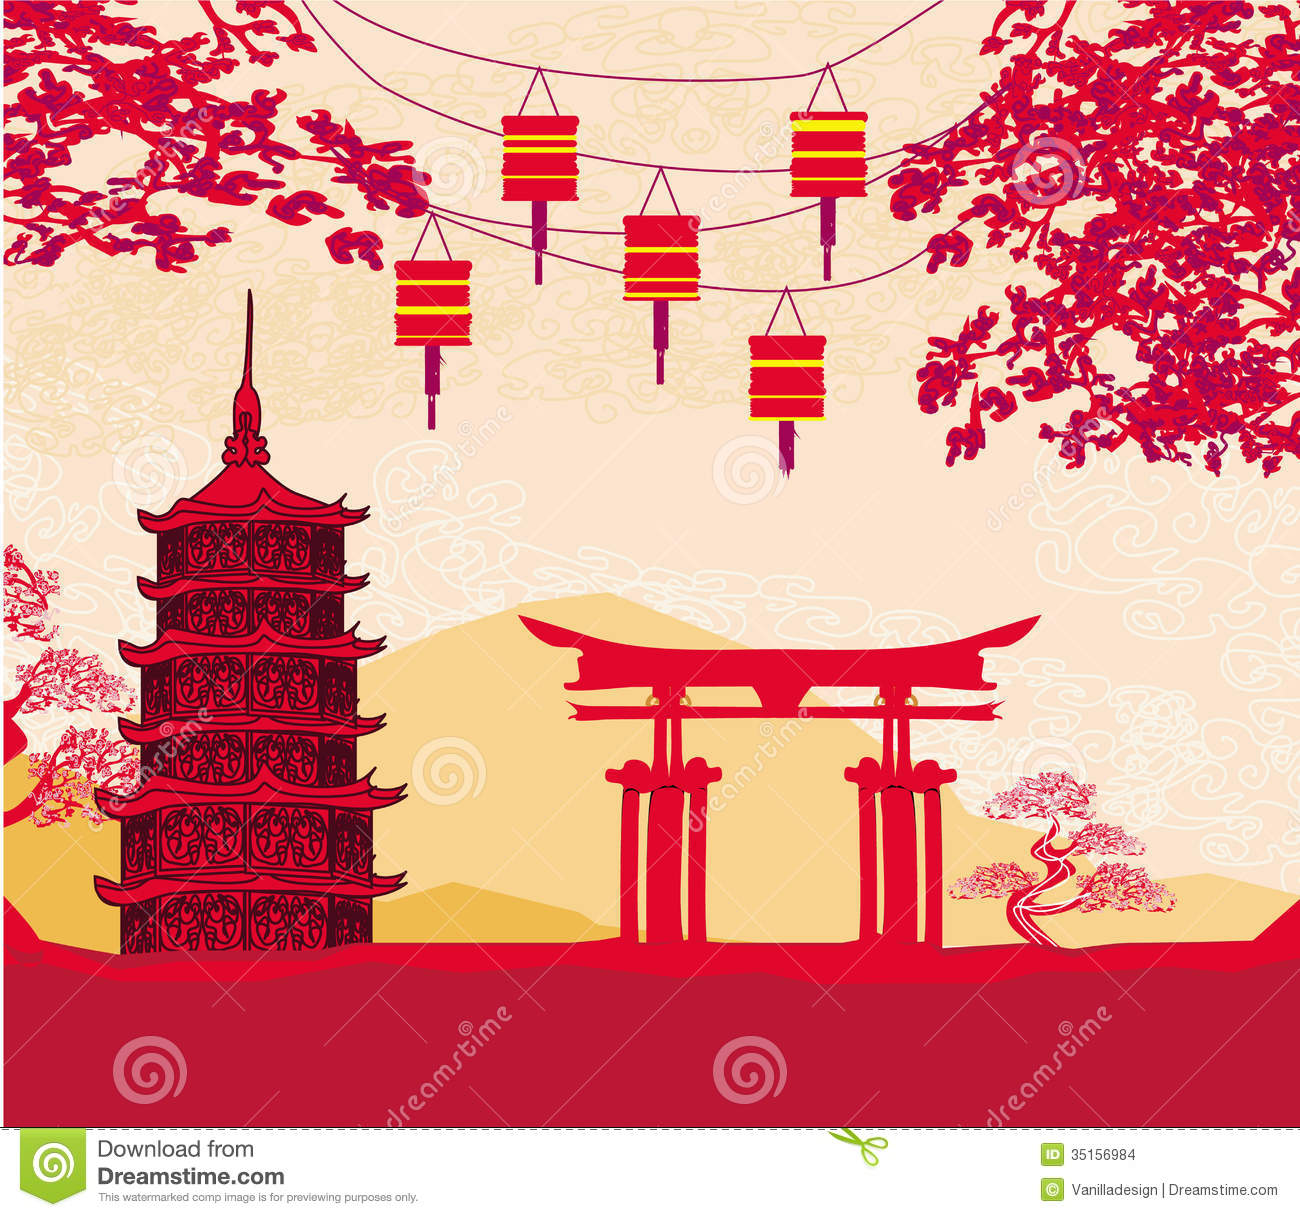 Building Style Abstract Business Card Template: Traditional Lanterns And Asian